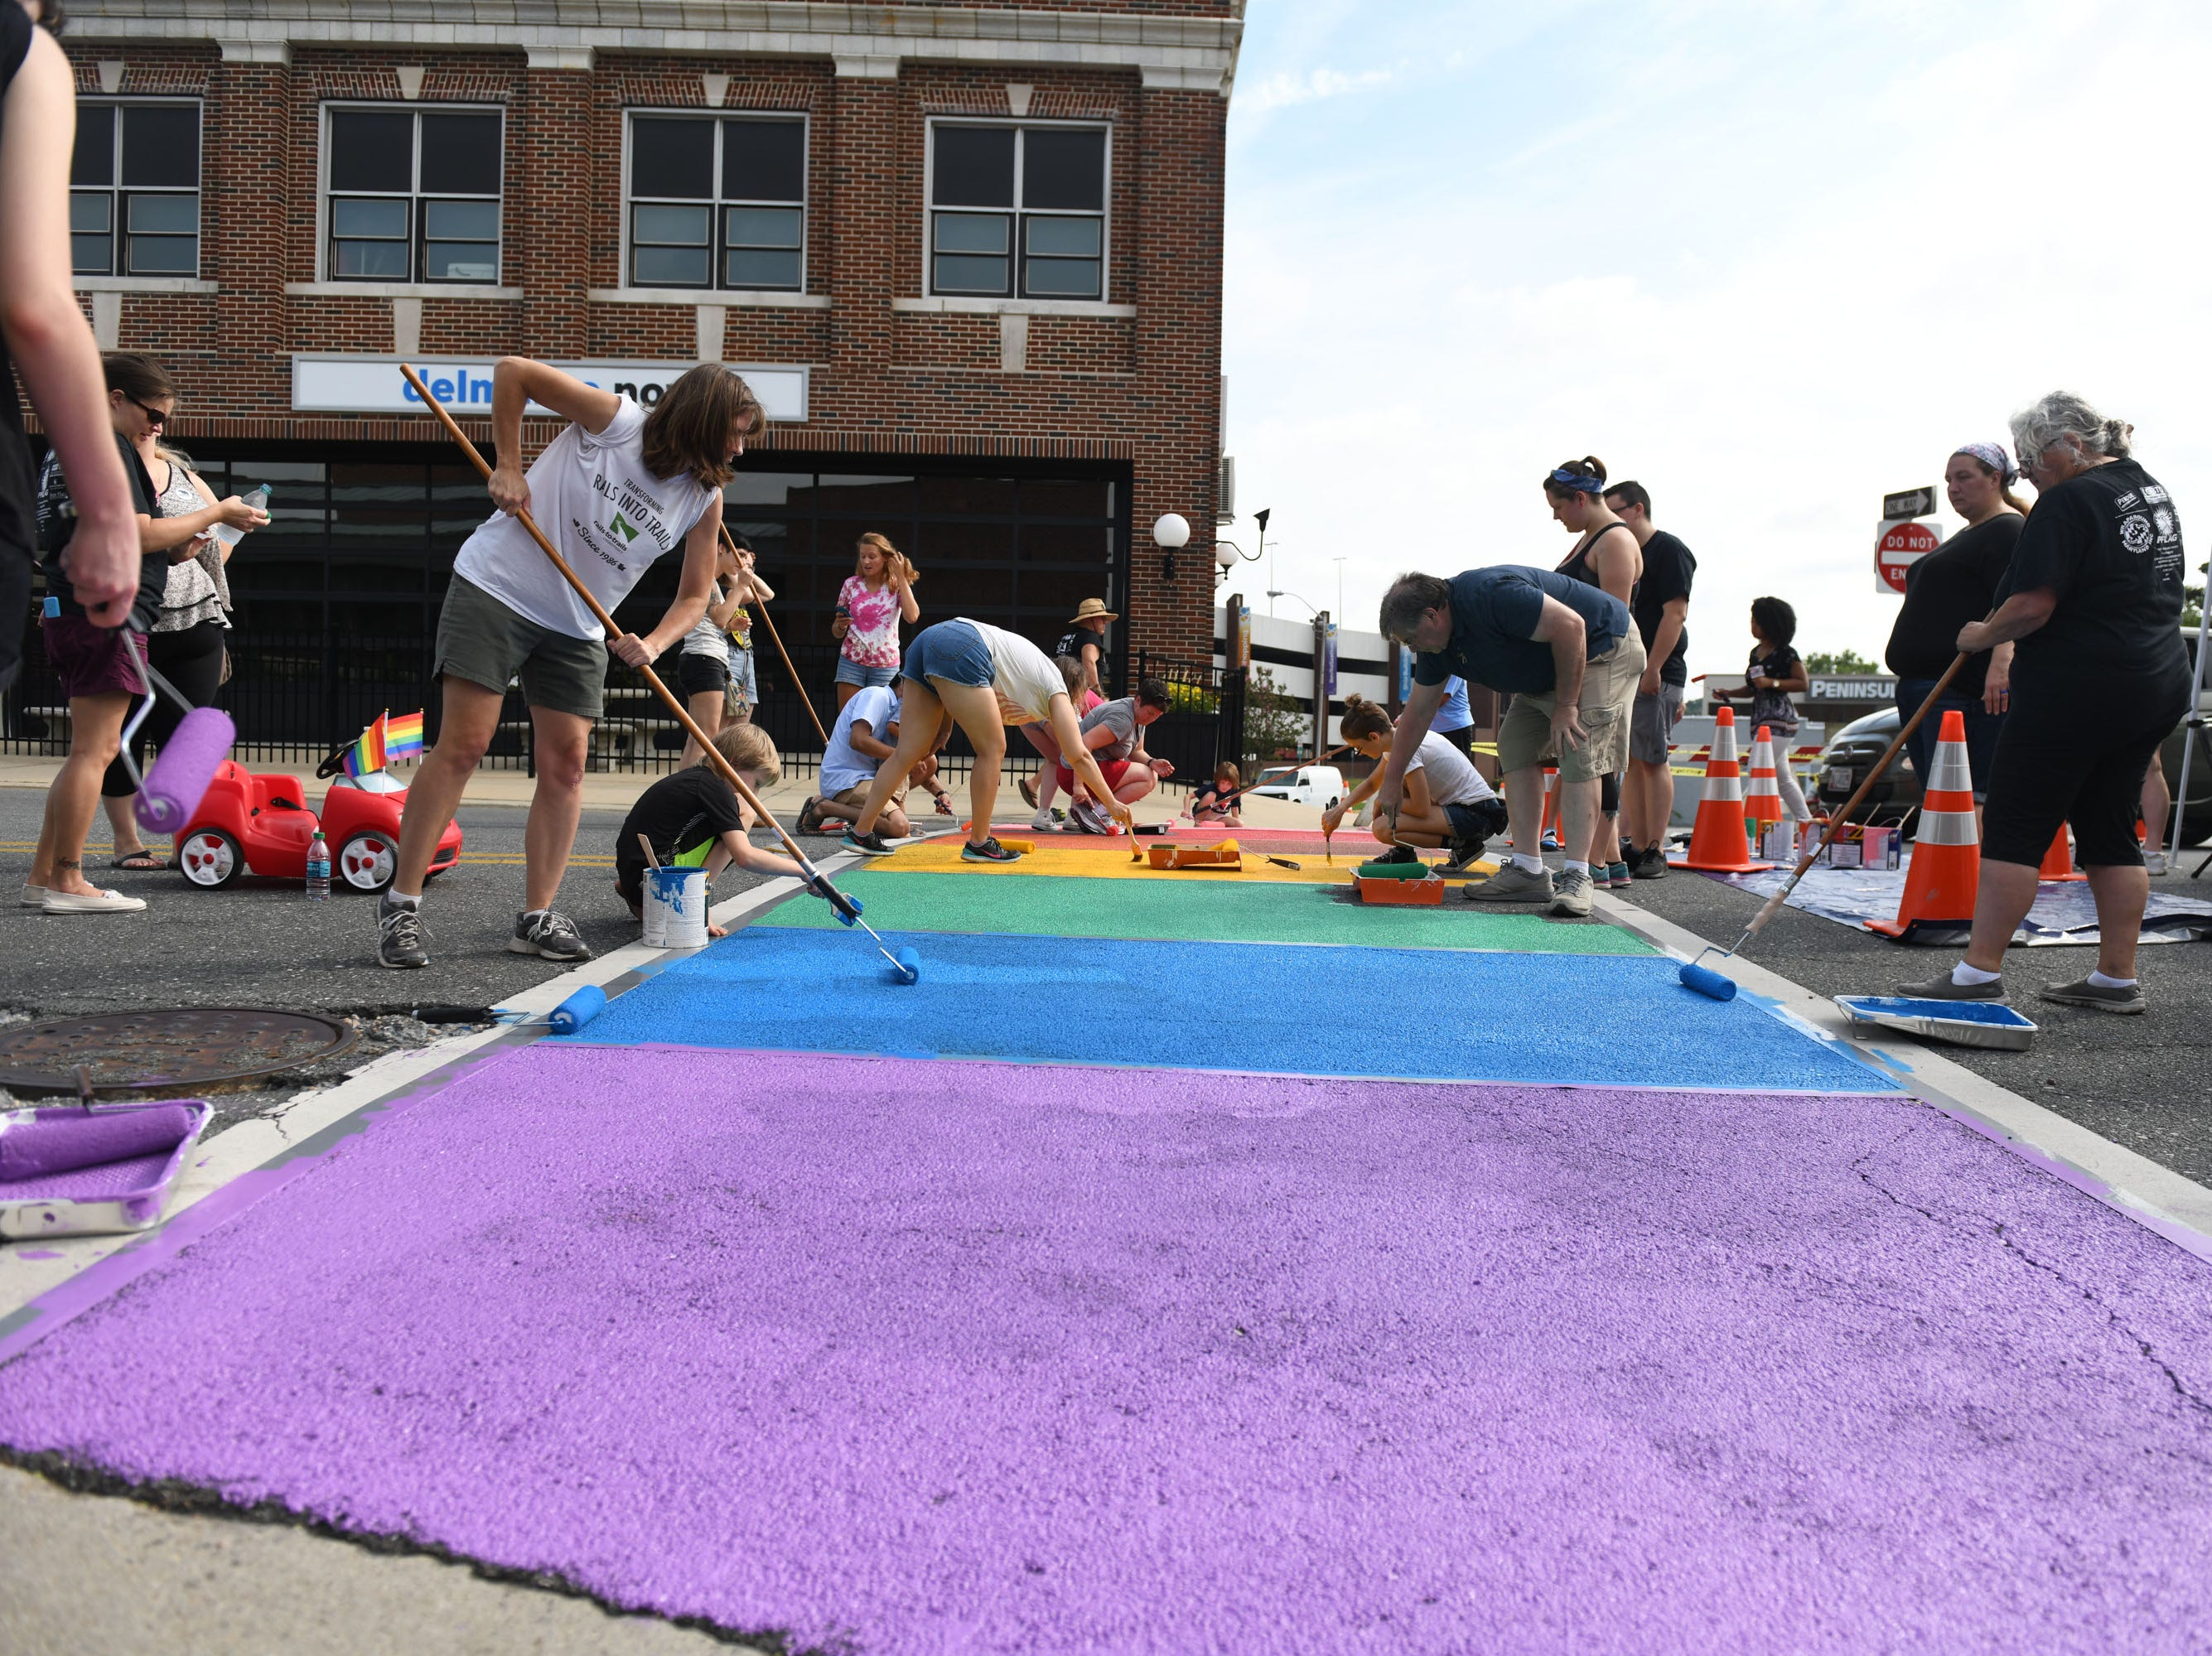 Salisbury PFLAG partnered with the City of Salisbury to paint a semi-permanent rainbow crosswalk in downtown Salisbury on Saturday, August 18, 2018.